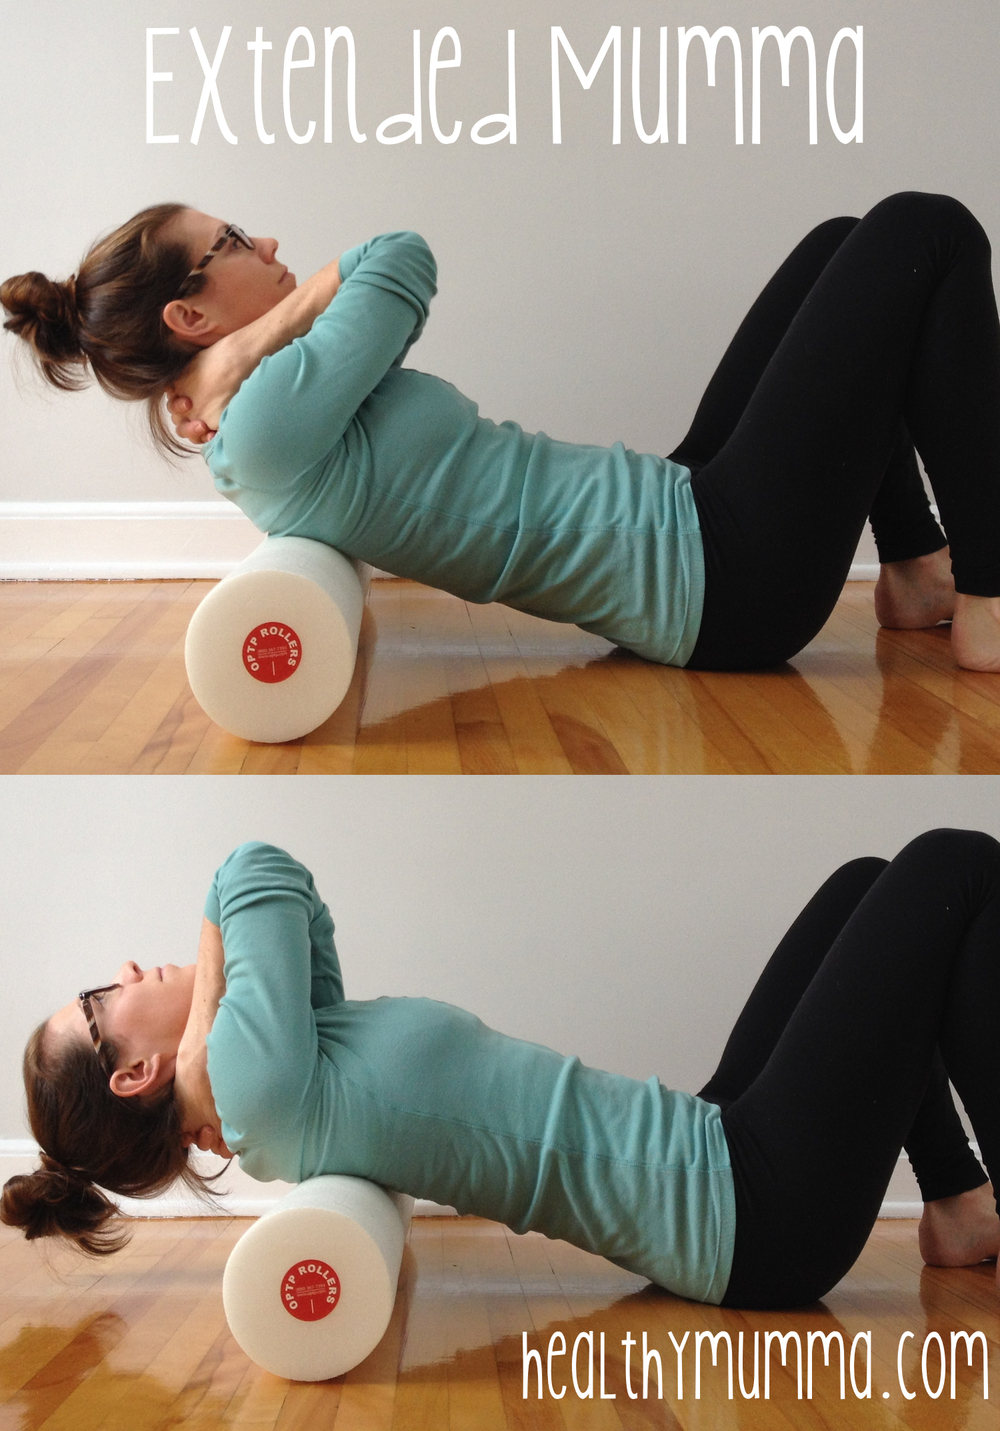 A great exercise for mid-back pain, thoracic spine extensions on a foam roller.